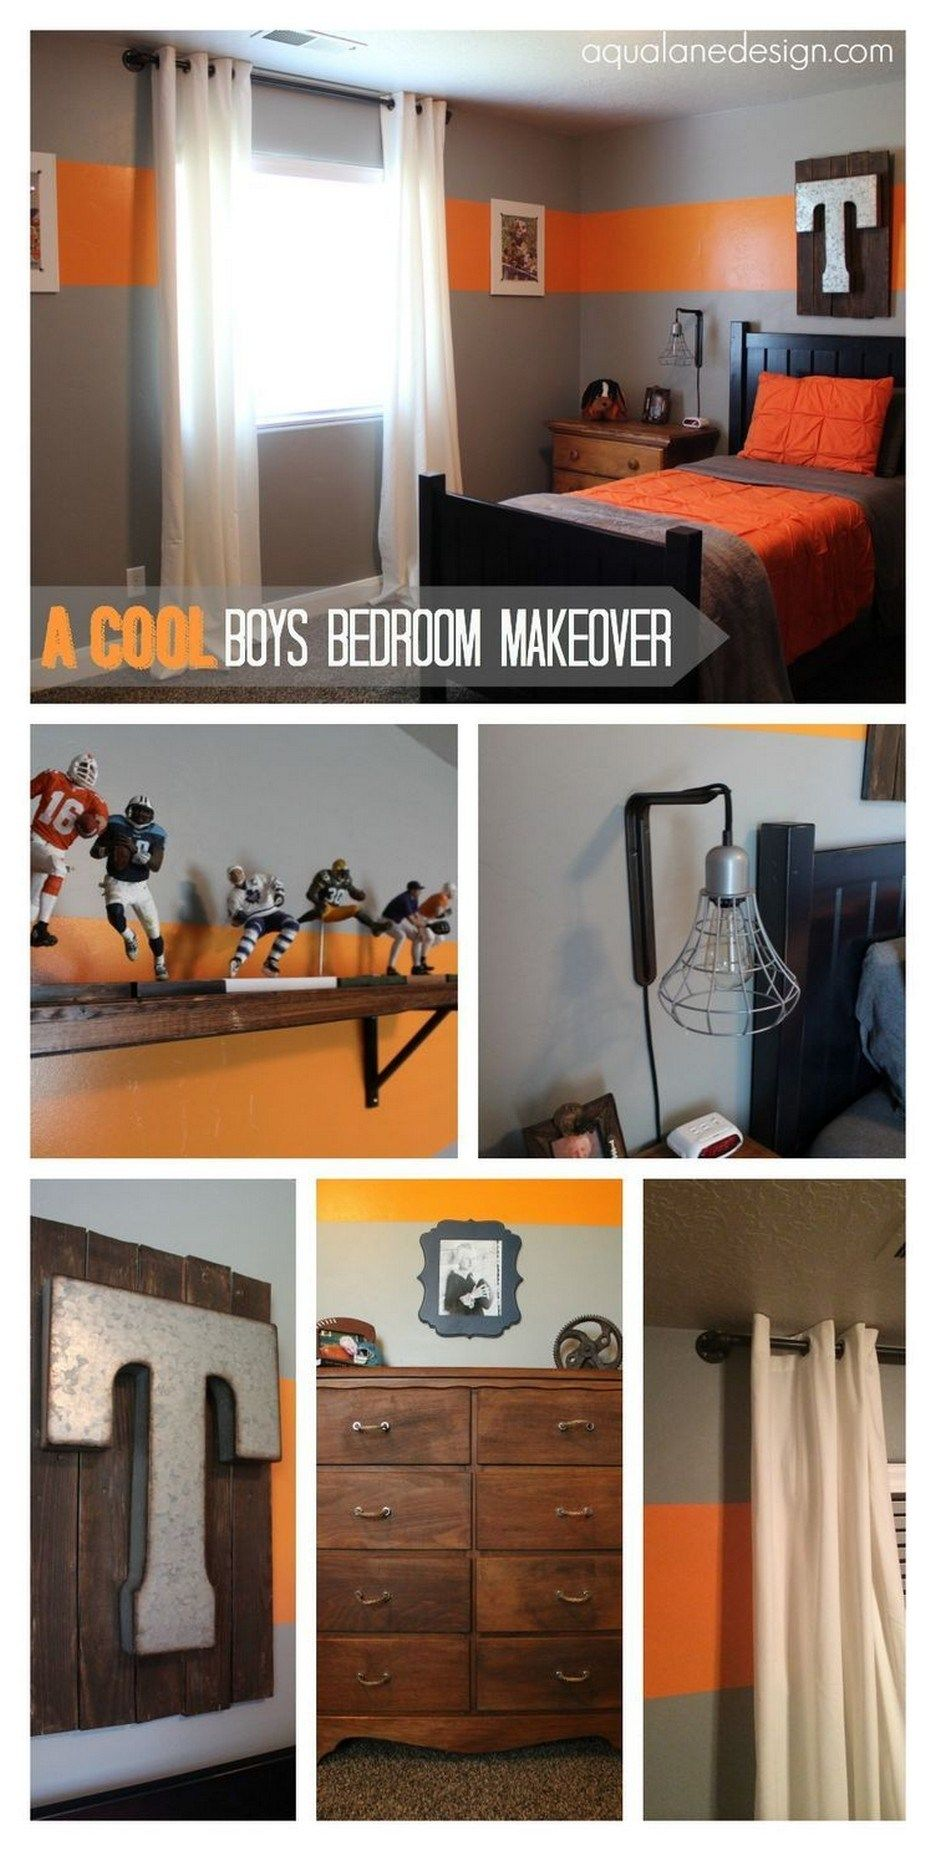 44 BRILLIANT BEDROOM DECORATION IDEAS FOR YOUR BOY 36